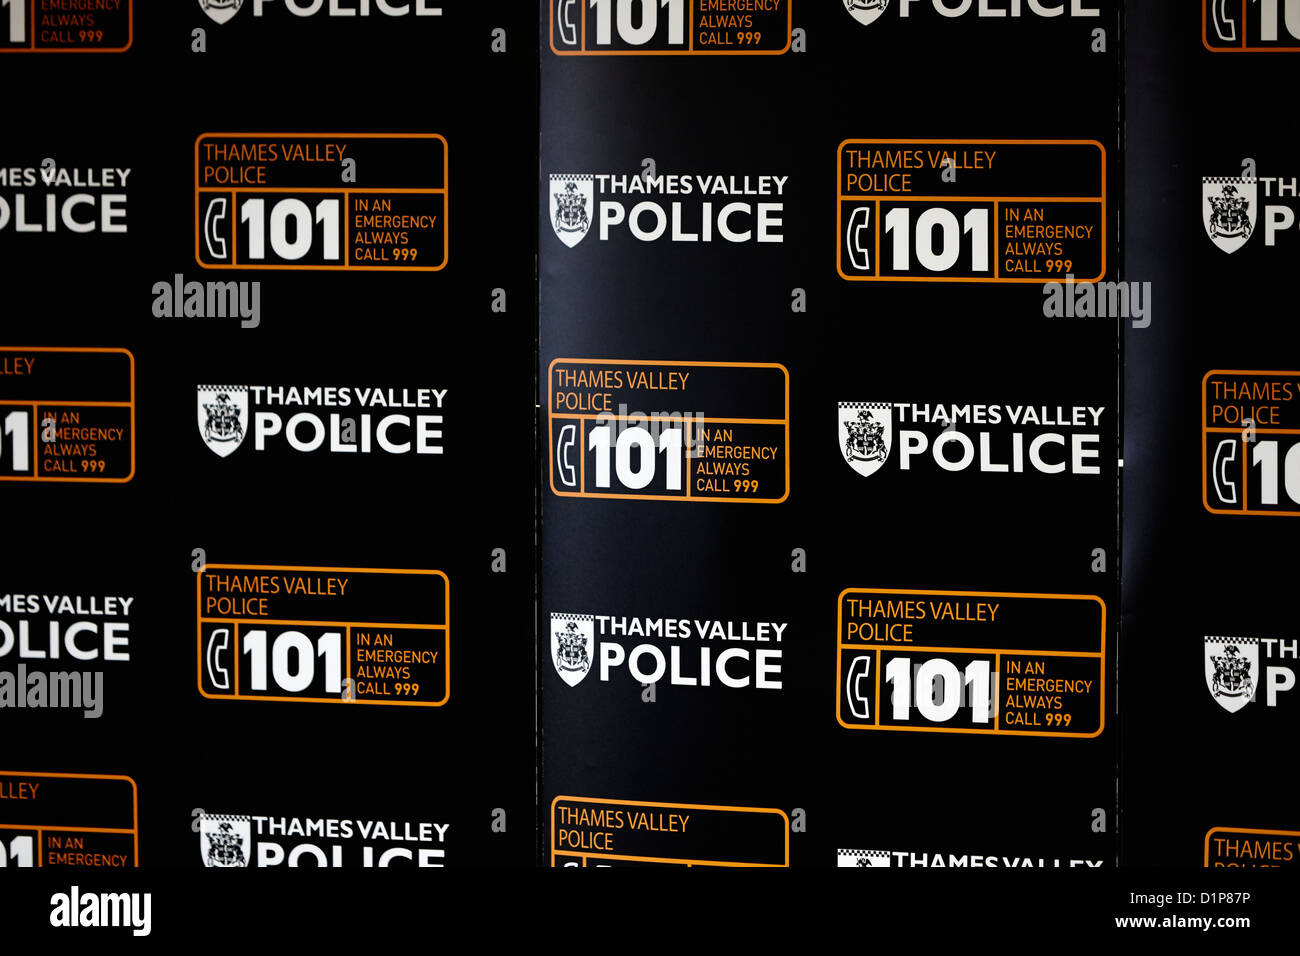 Thames Valley Police 101 logos - Stock Image